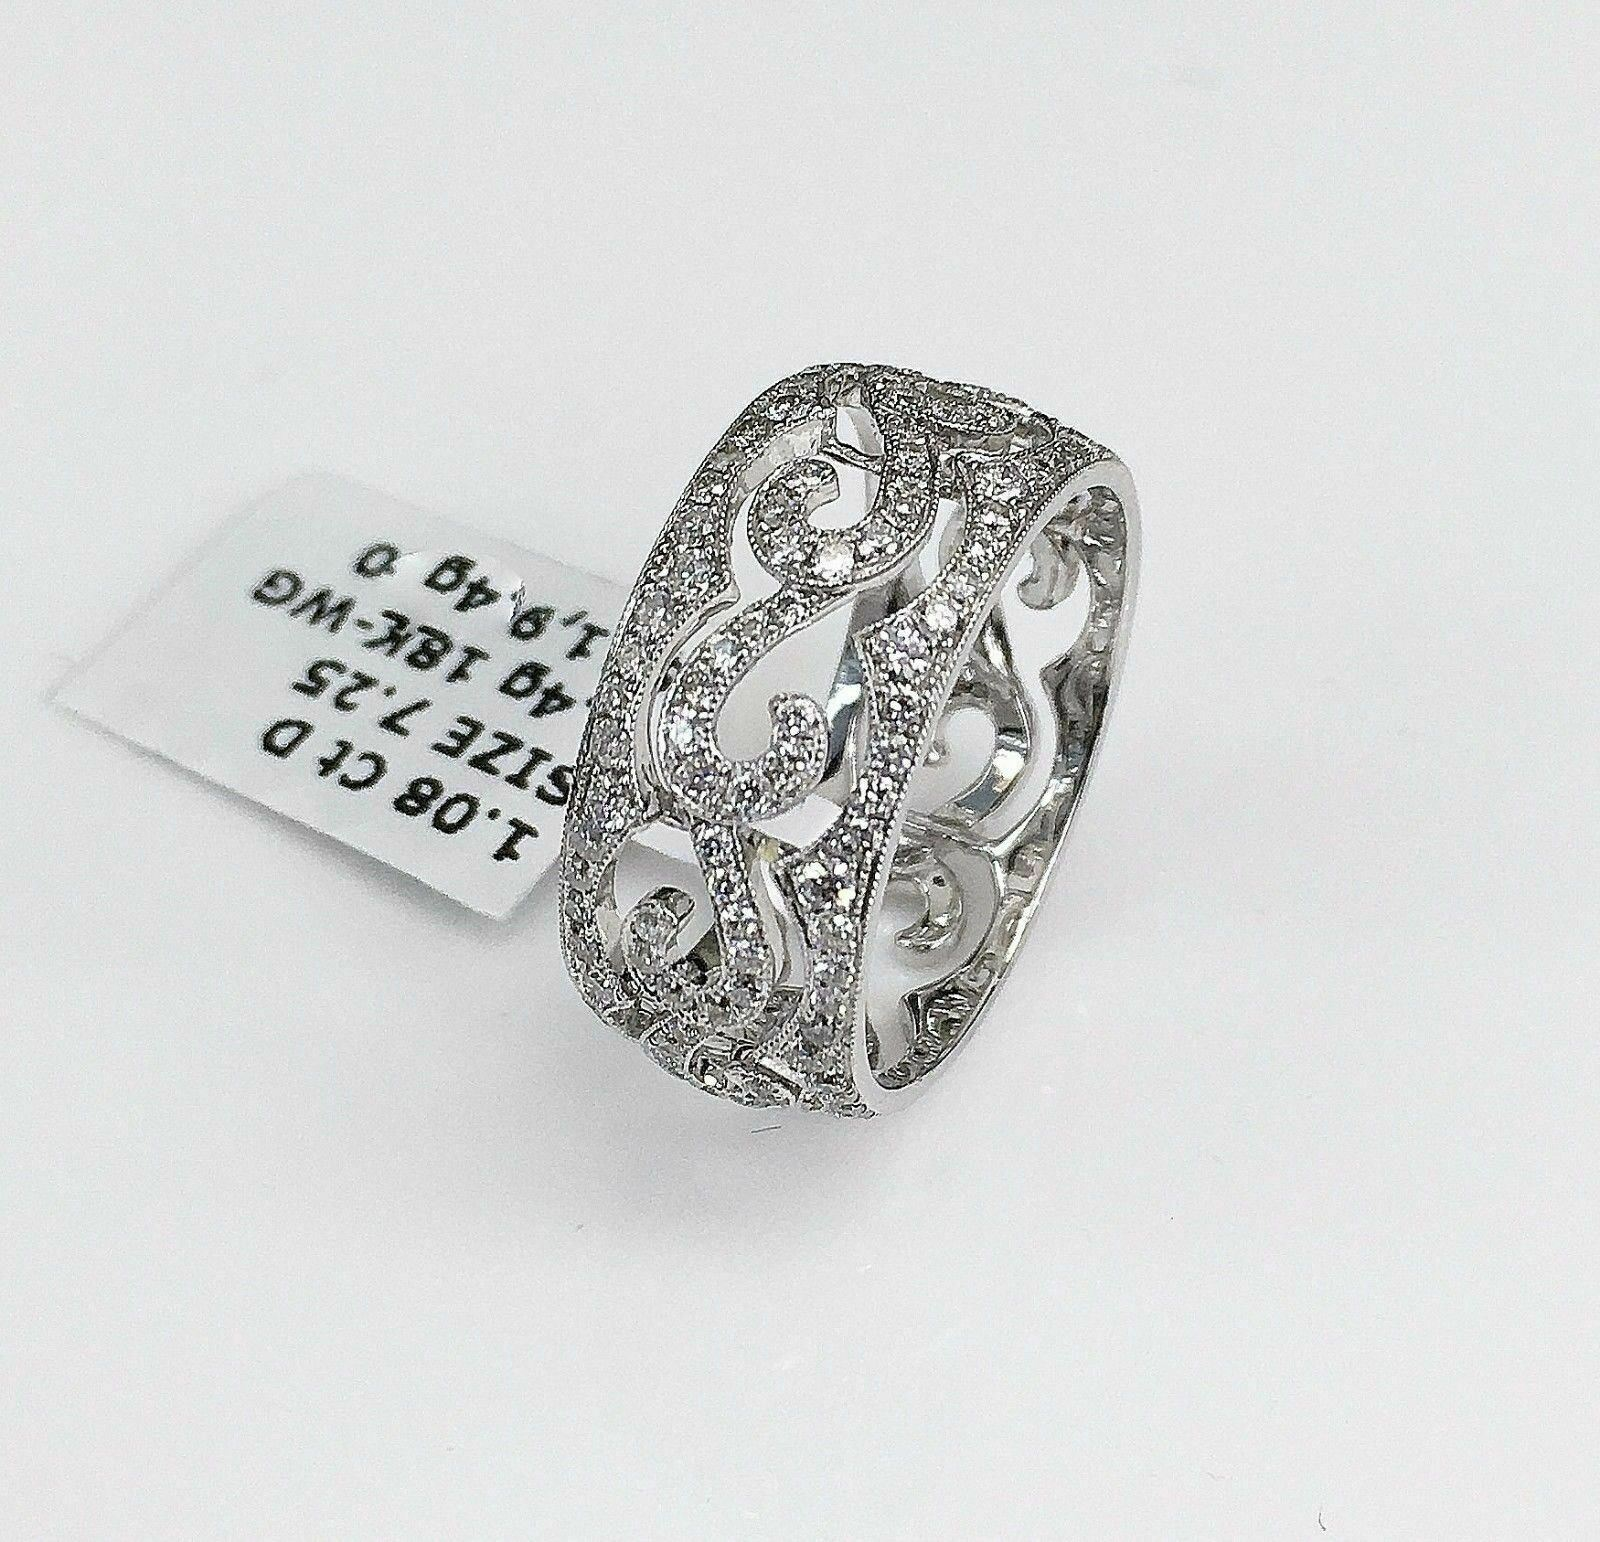 1.08 Carats t.w. Diamond Pave Eternity Ring 18K Gold Brand New 80% Diamonds